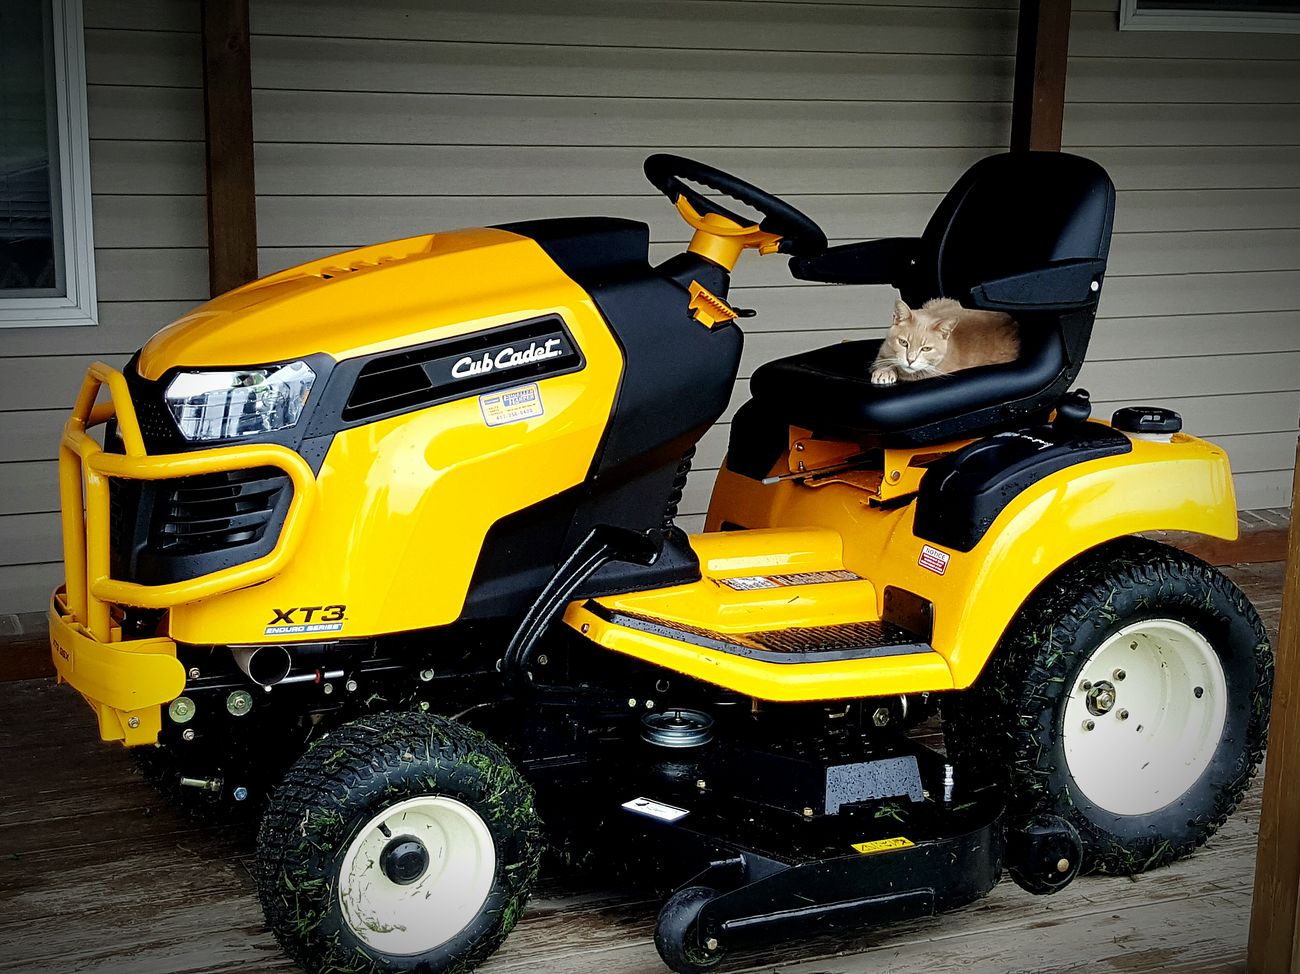 Mower New Toys Mine ❤ Country Girl Countrylife Yellow Color Power House Yard Work Cat♡ ~Jackie ~ Adult Toys